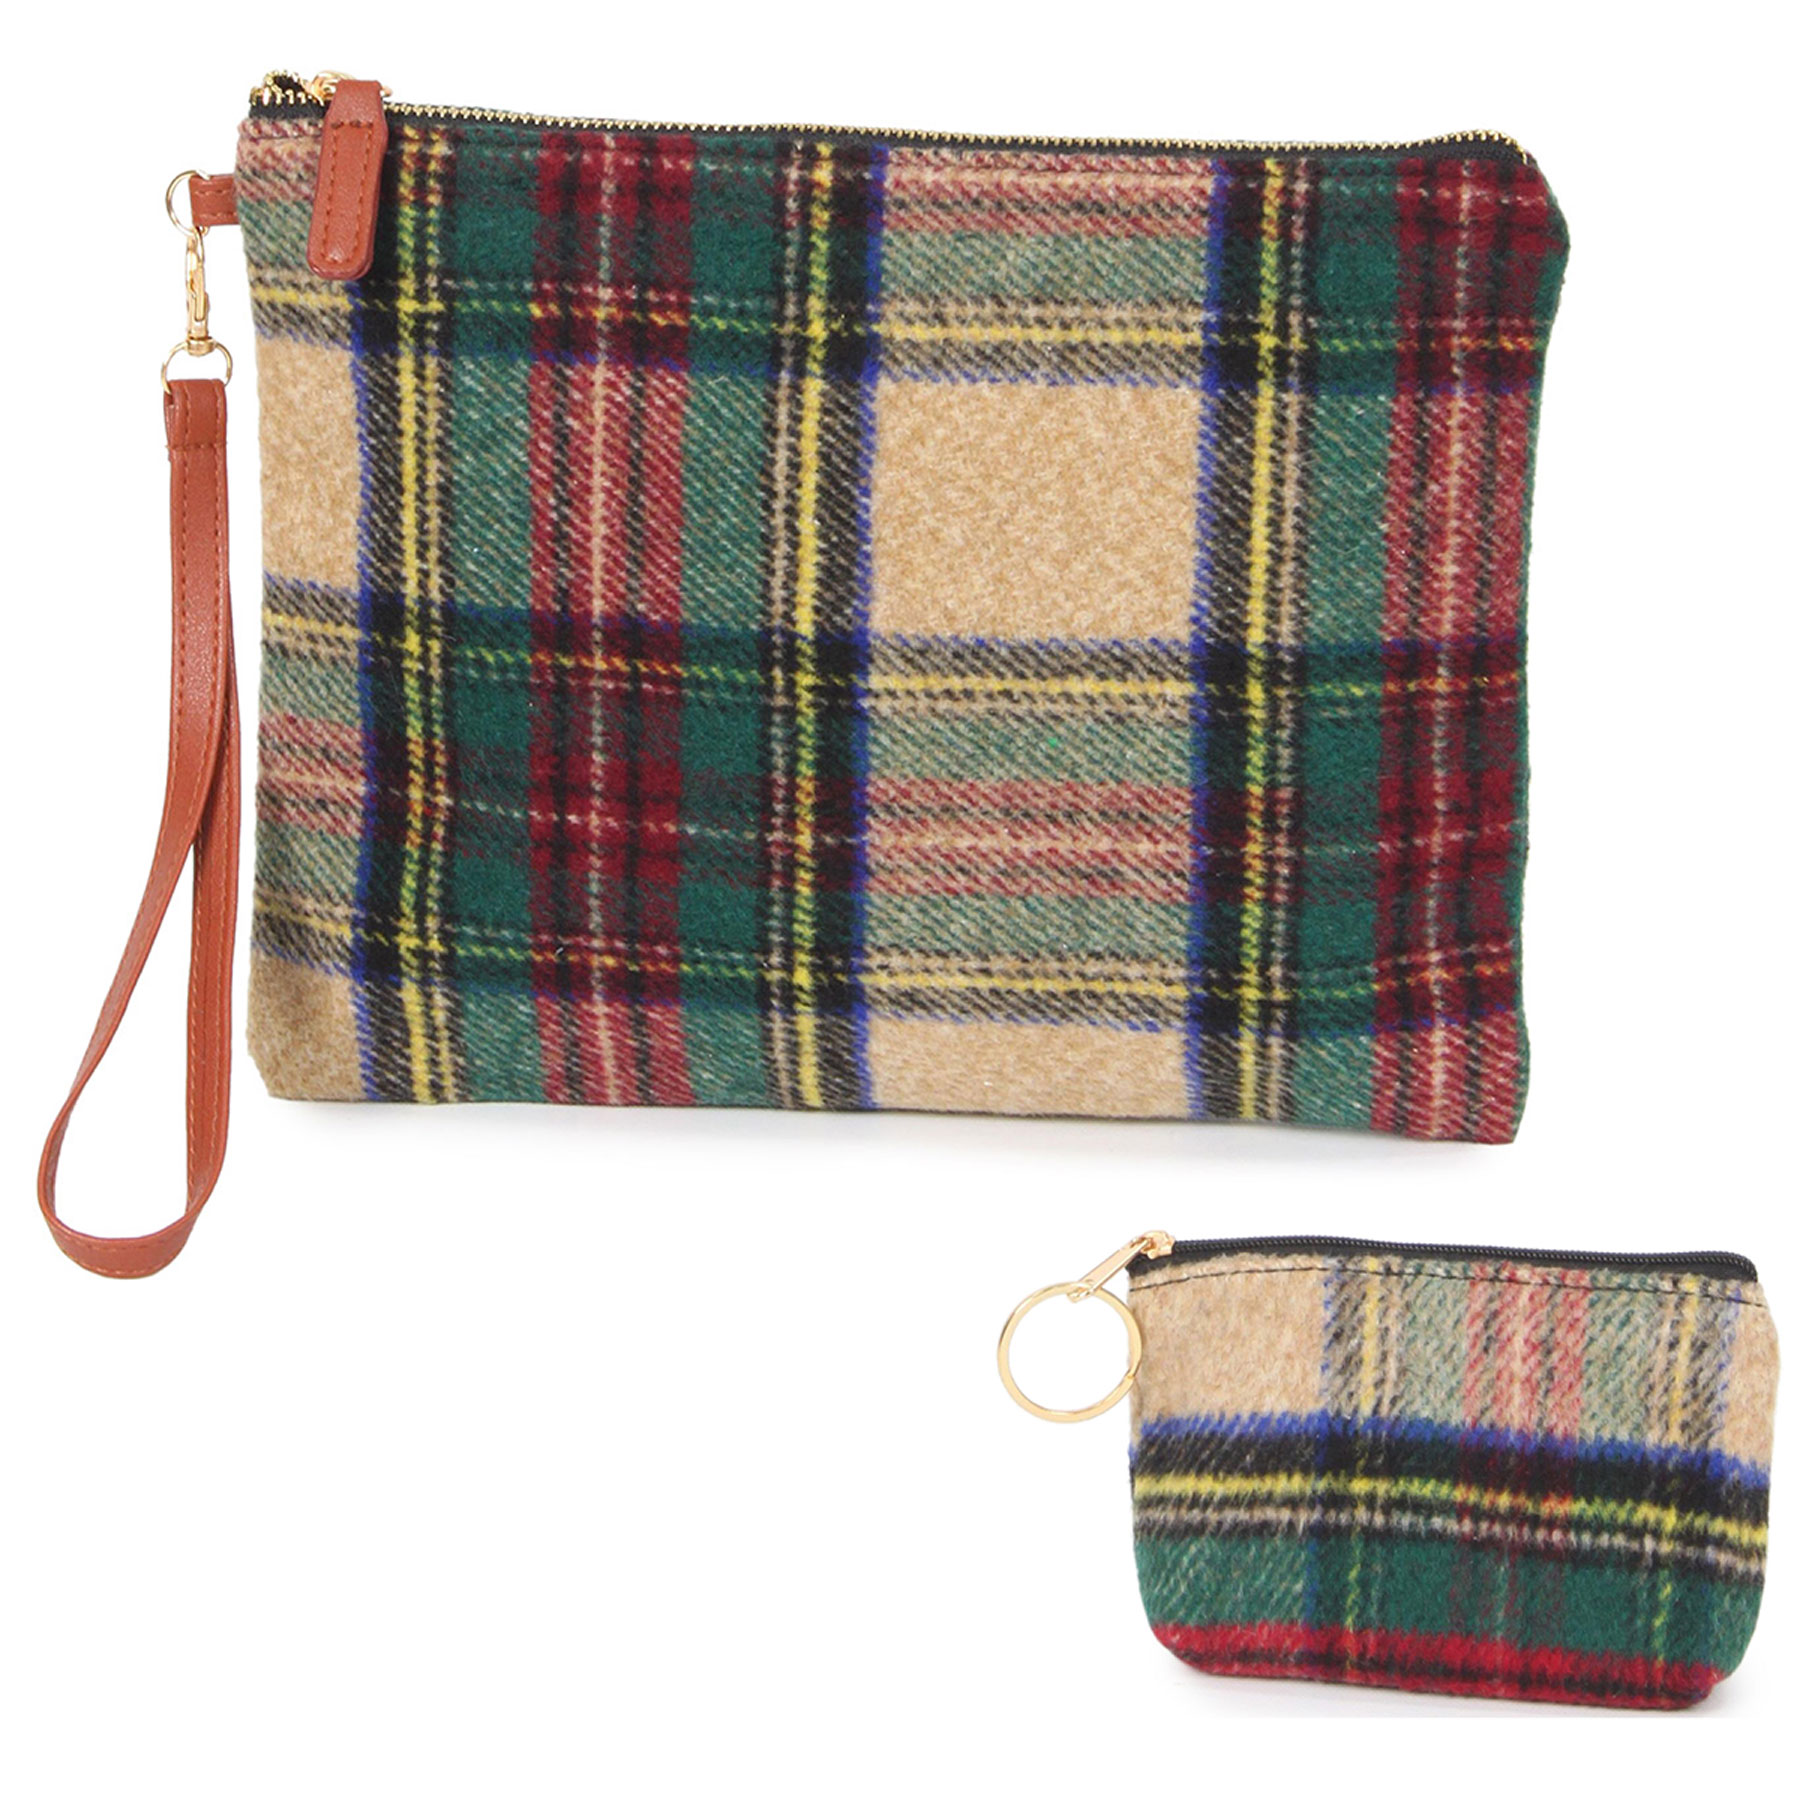 Wholesale Crossbody Bags, Wristlets & Coin Purses